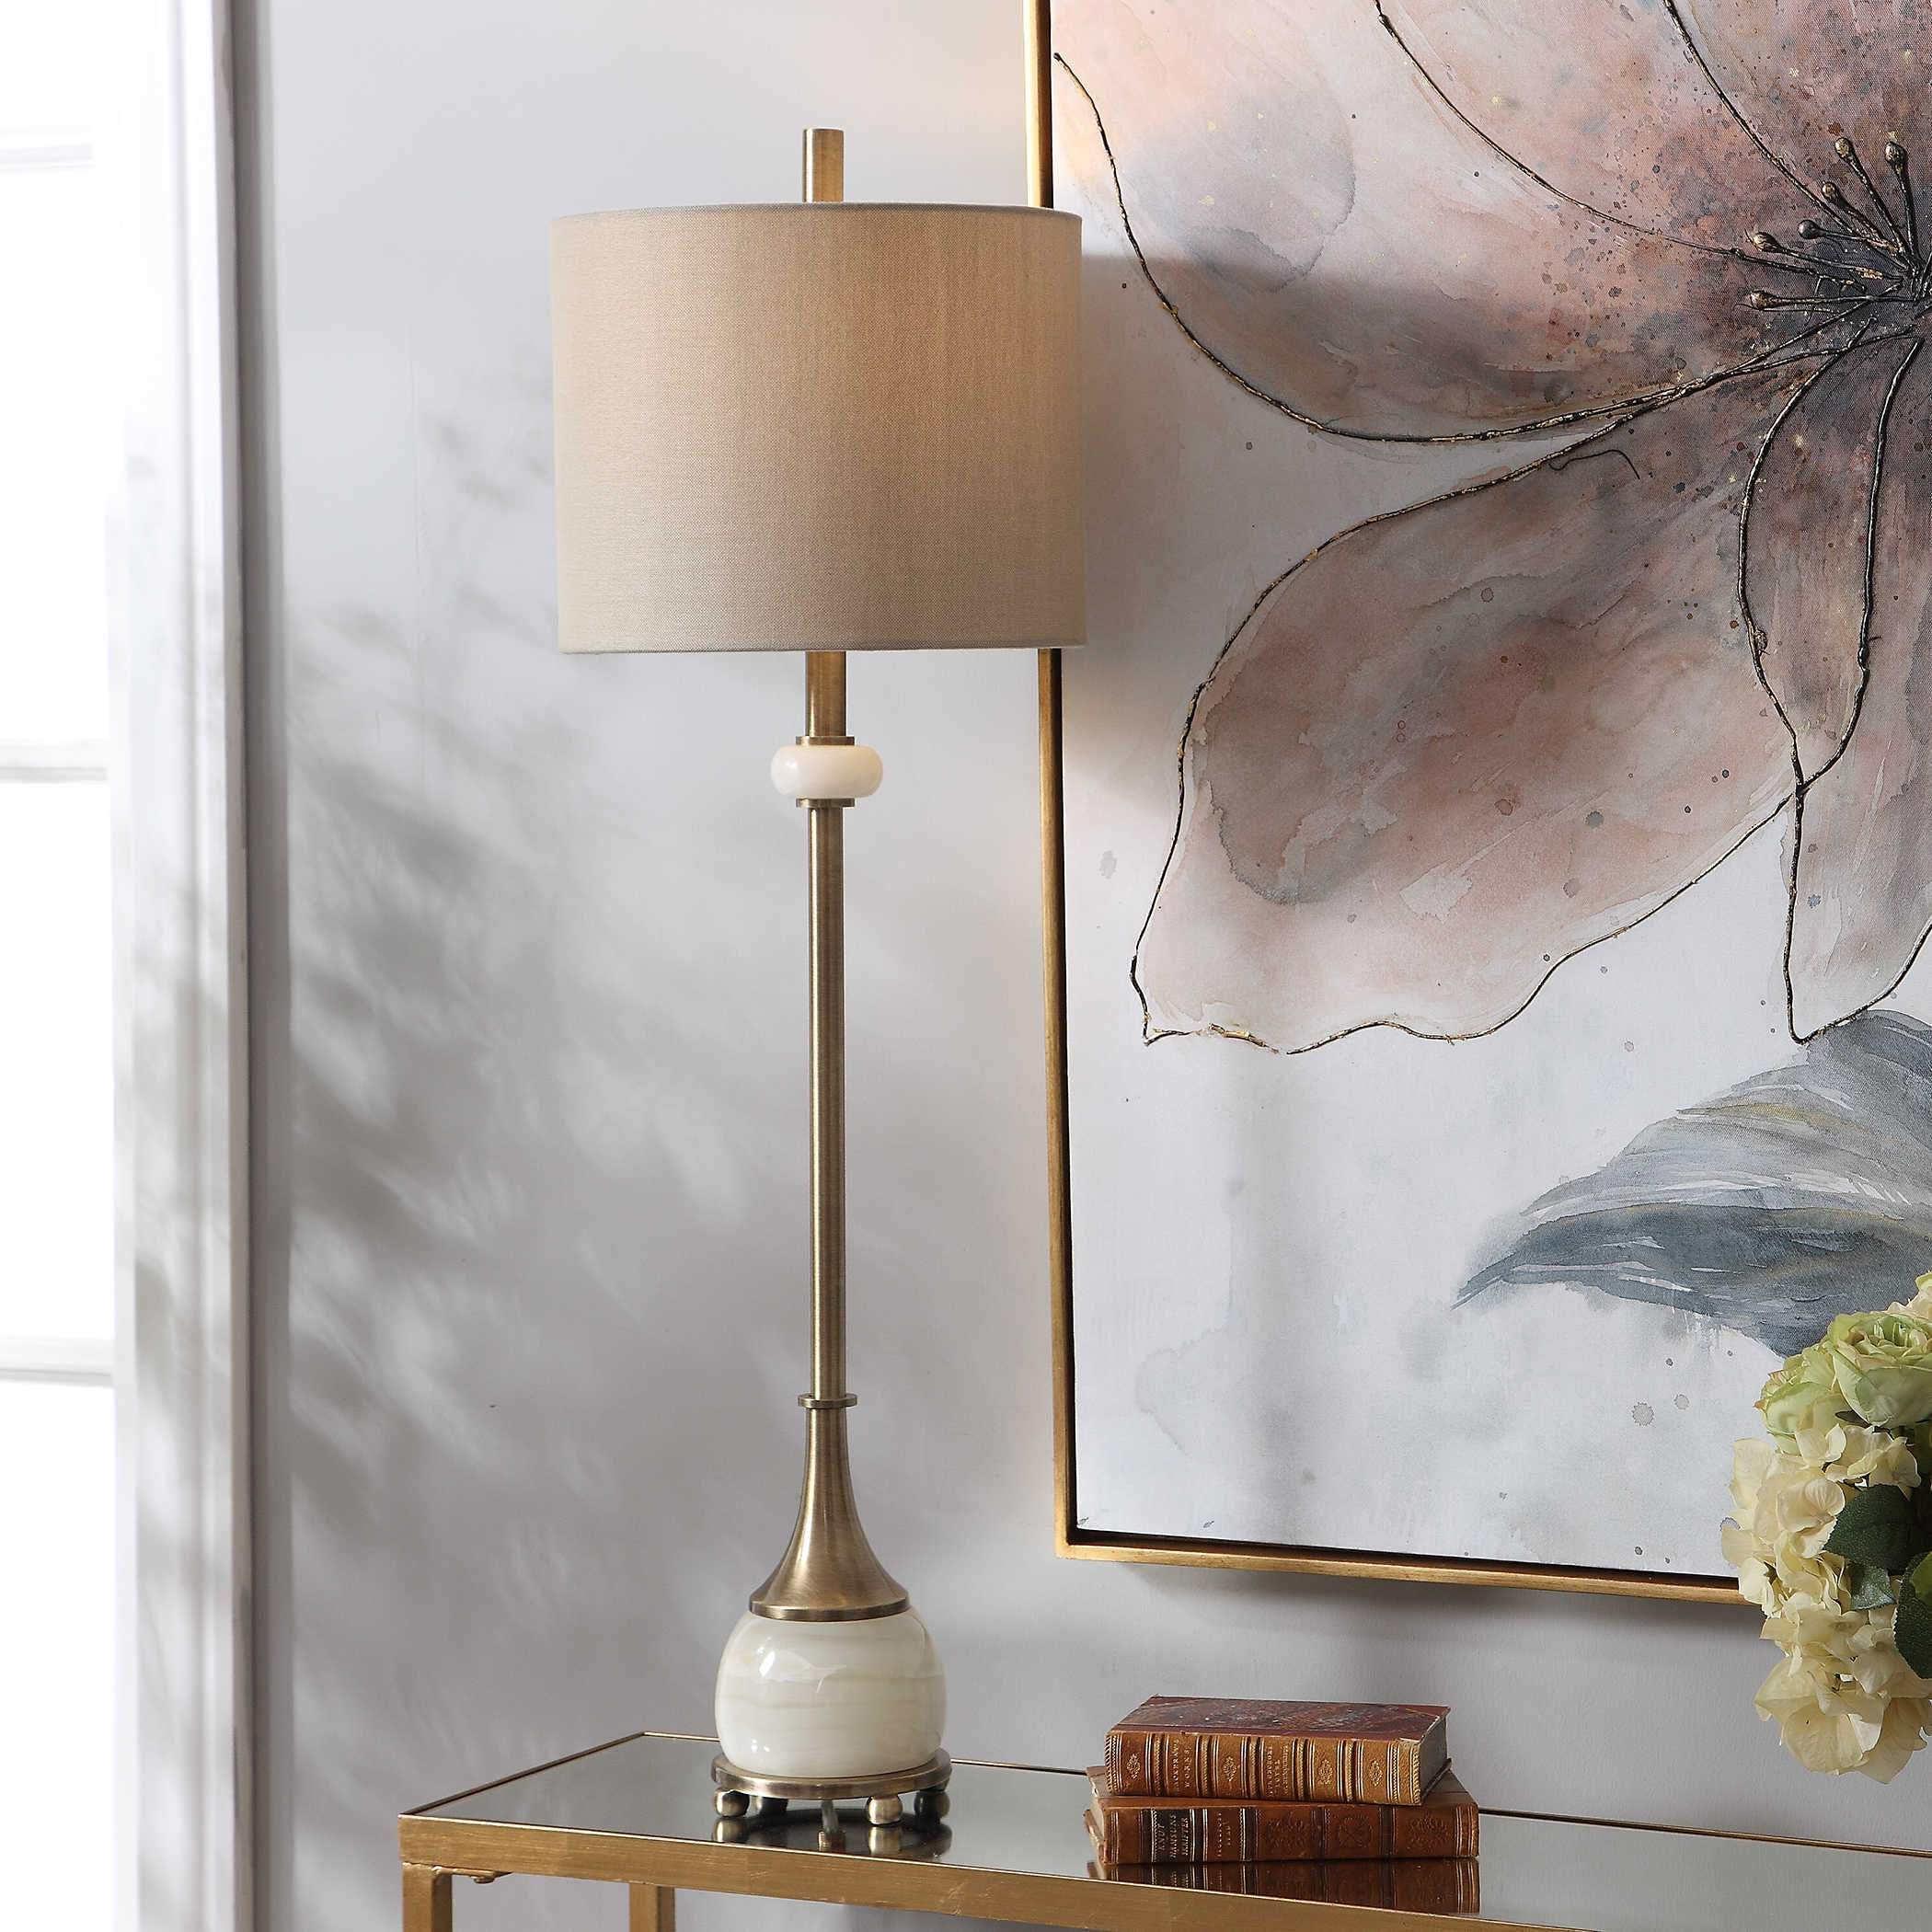 Uttermost Natania Buffet Lamp; EST SHIP: JUN 11, 2021